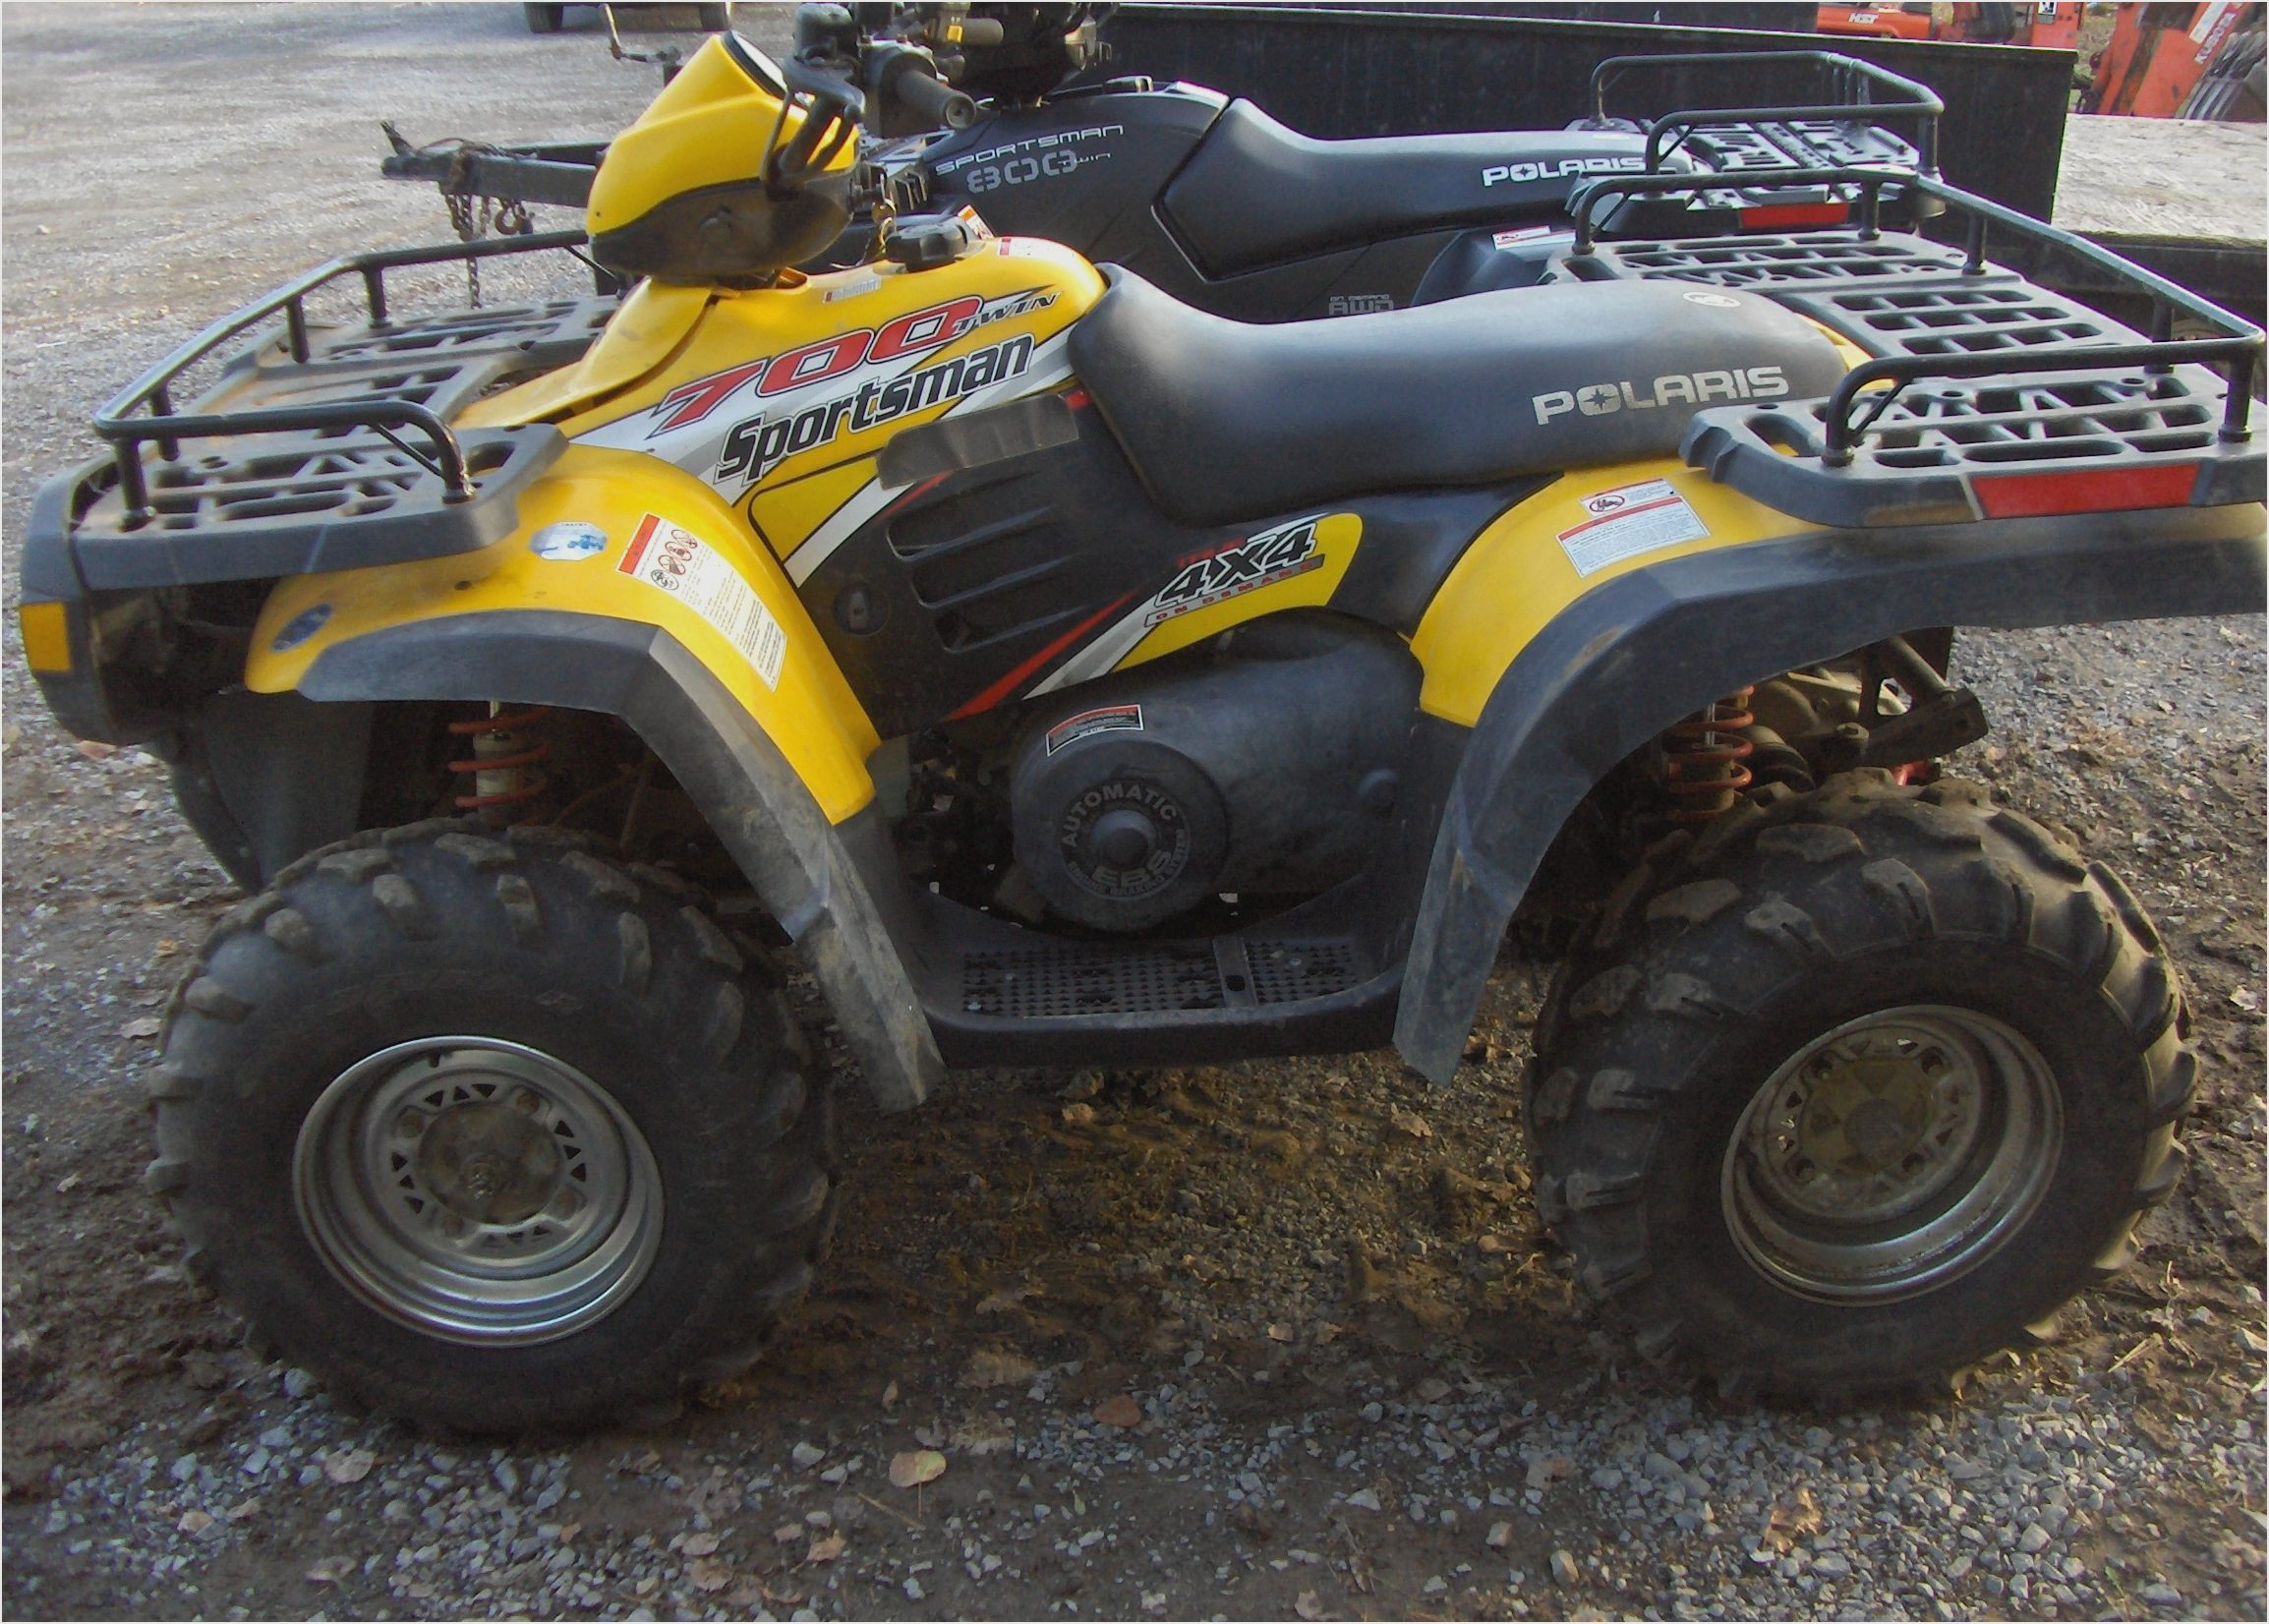 Polaris Sportsman 700 2007 images #121217